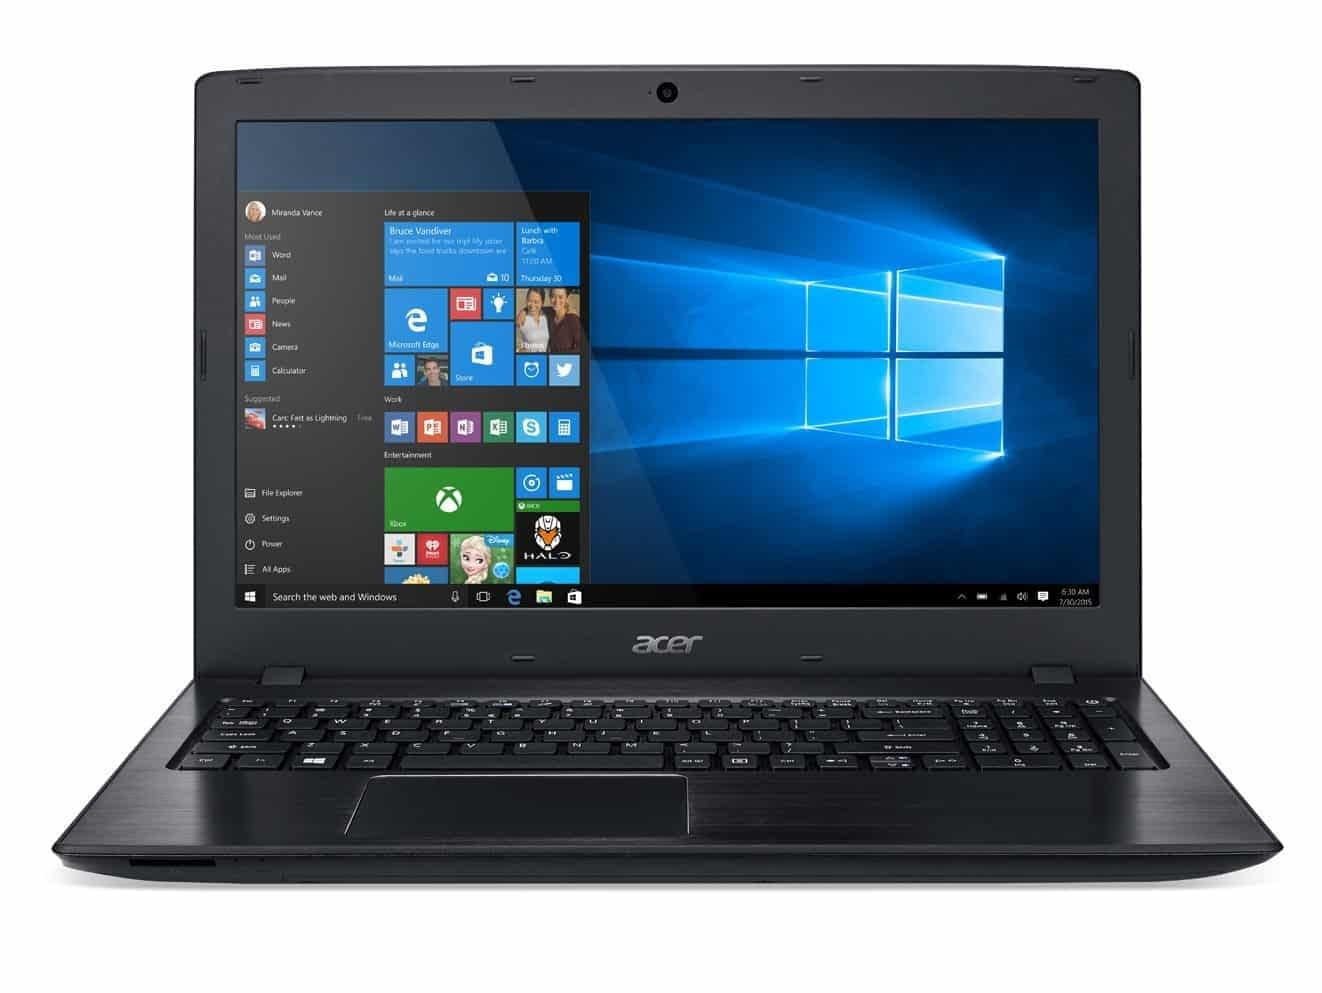 The $400 Acer Aspire E15 Laptop